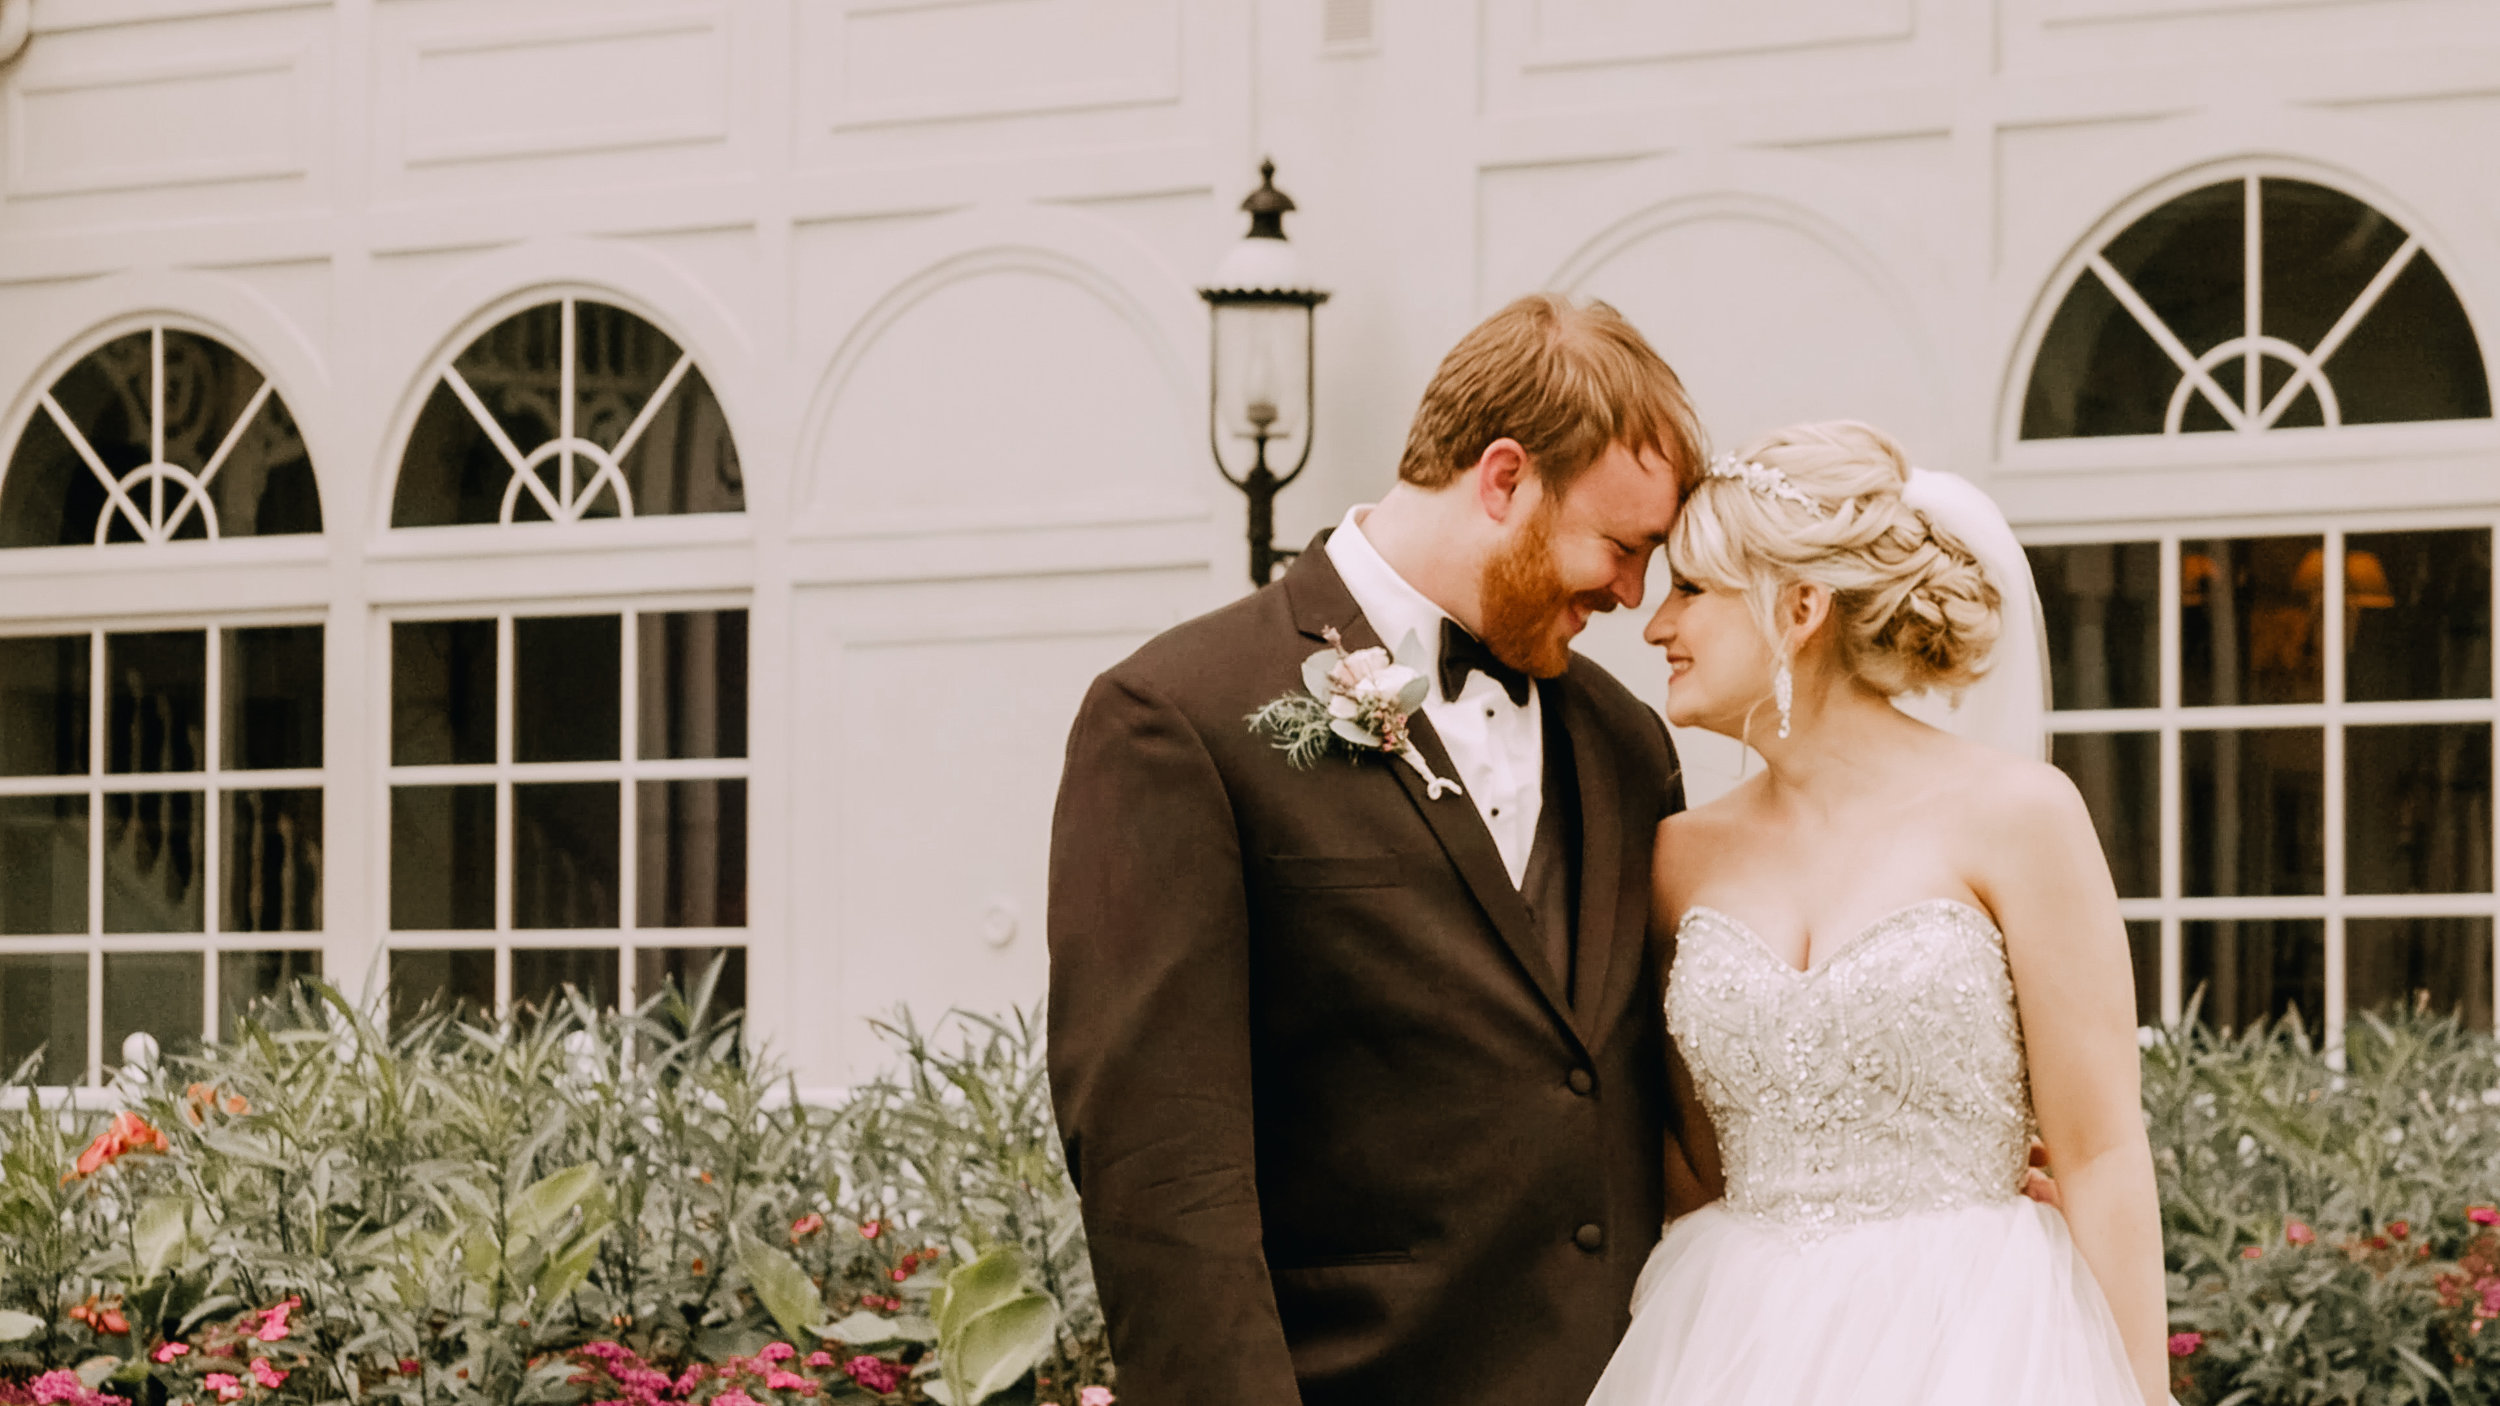 BRENDEN + KAITLYN - The wedding of Brenden + Kaitlyn, captured at Shades of Green Resort in Orlando, FL.